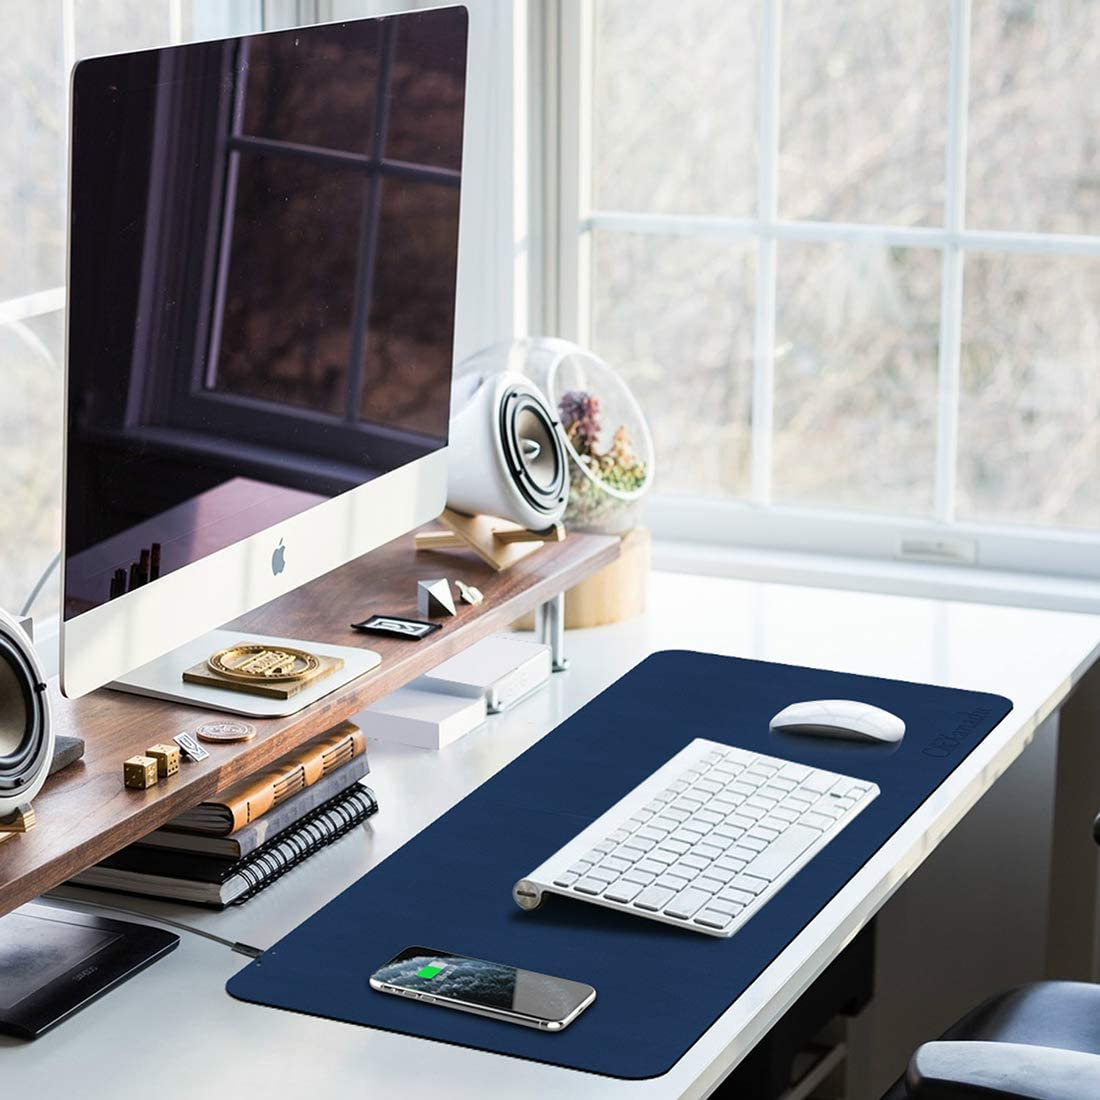 Large Mouse Pads for Office//Home,Knitted Cloth Off-White Space-IOT QI Wireless Charging Mouse Mats 31.5X11.8 inch